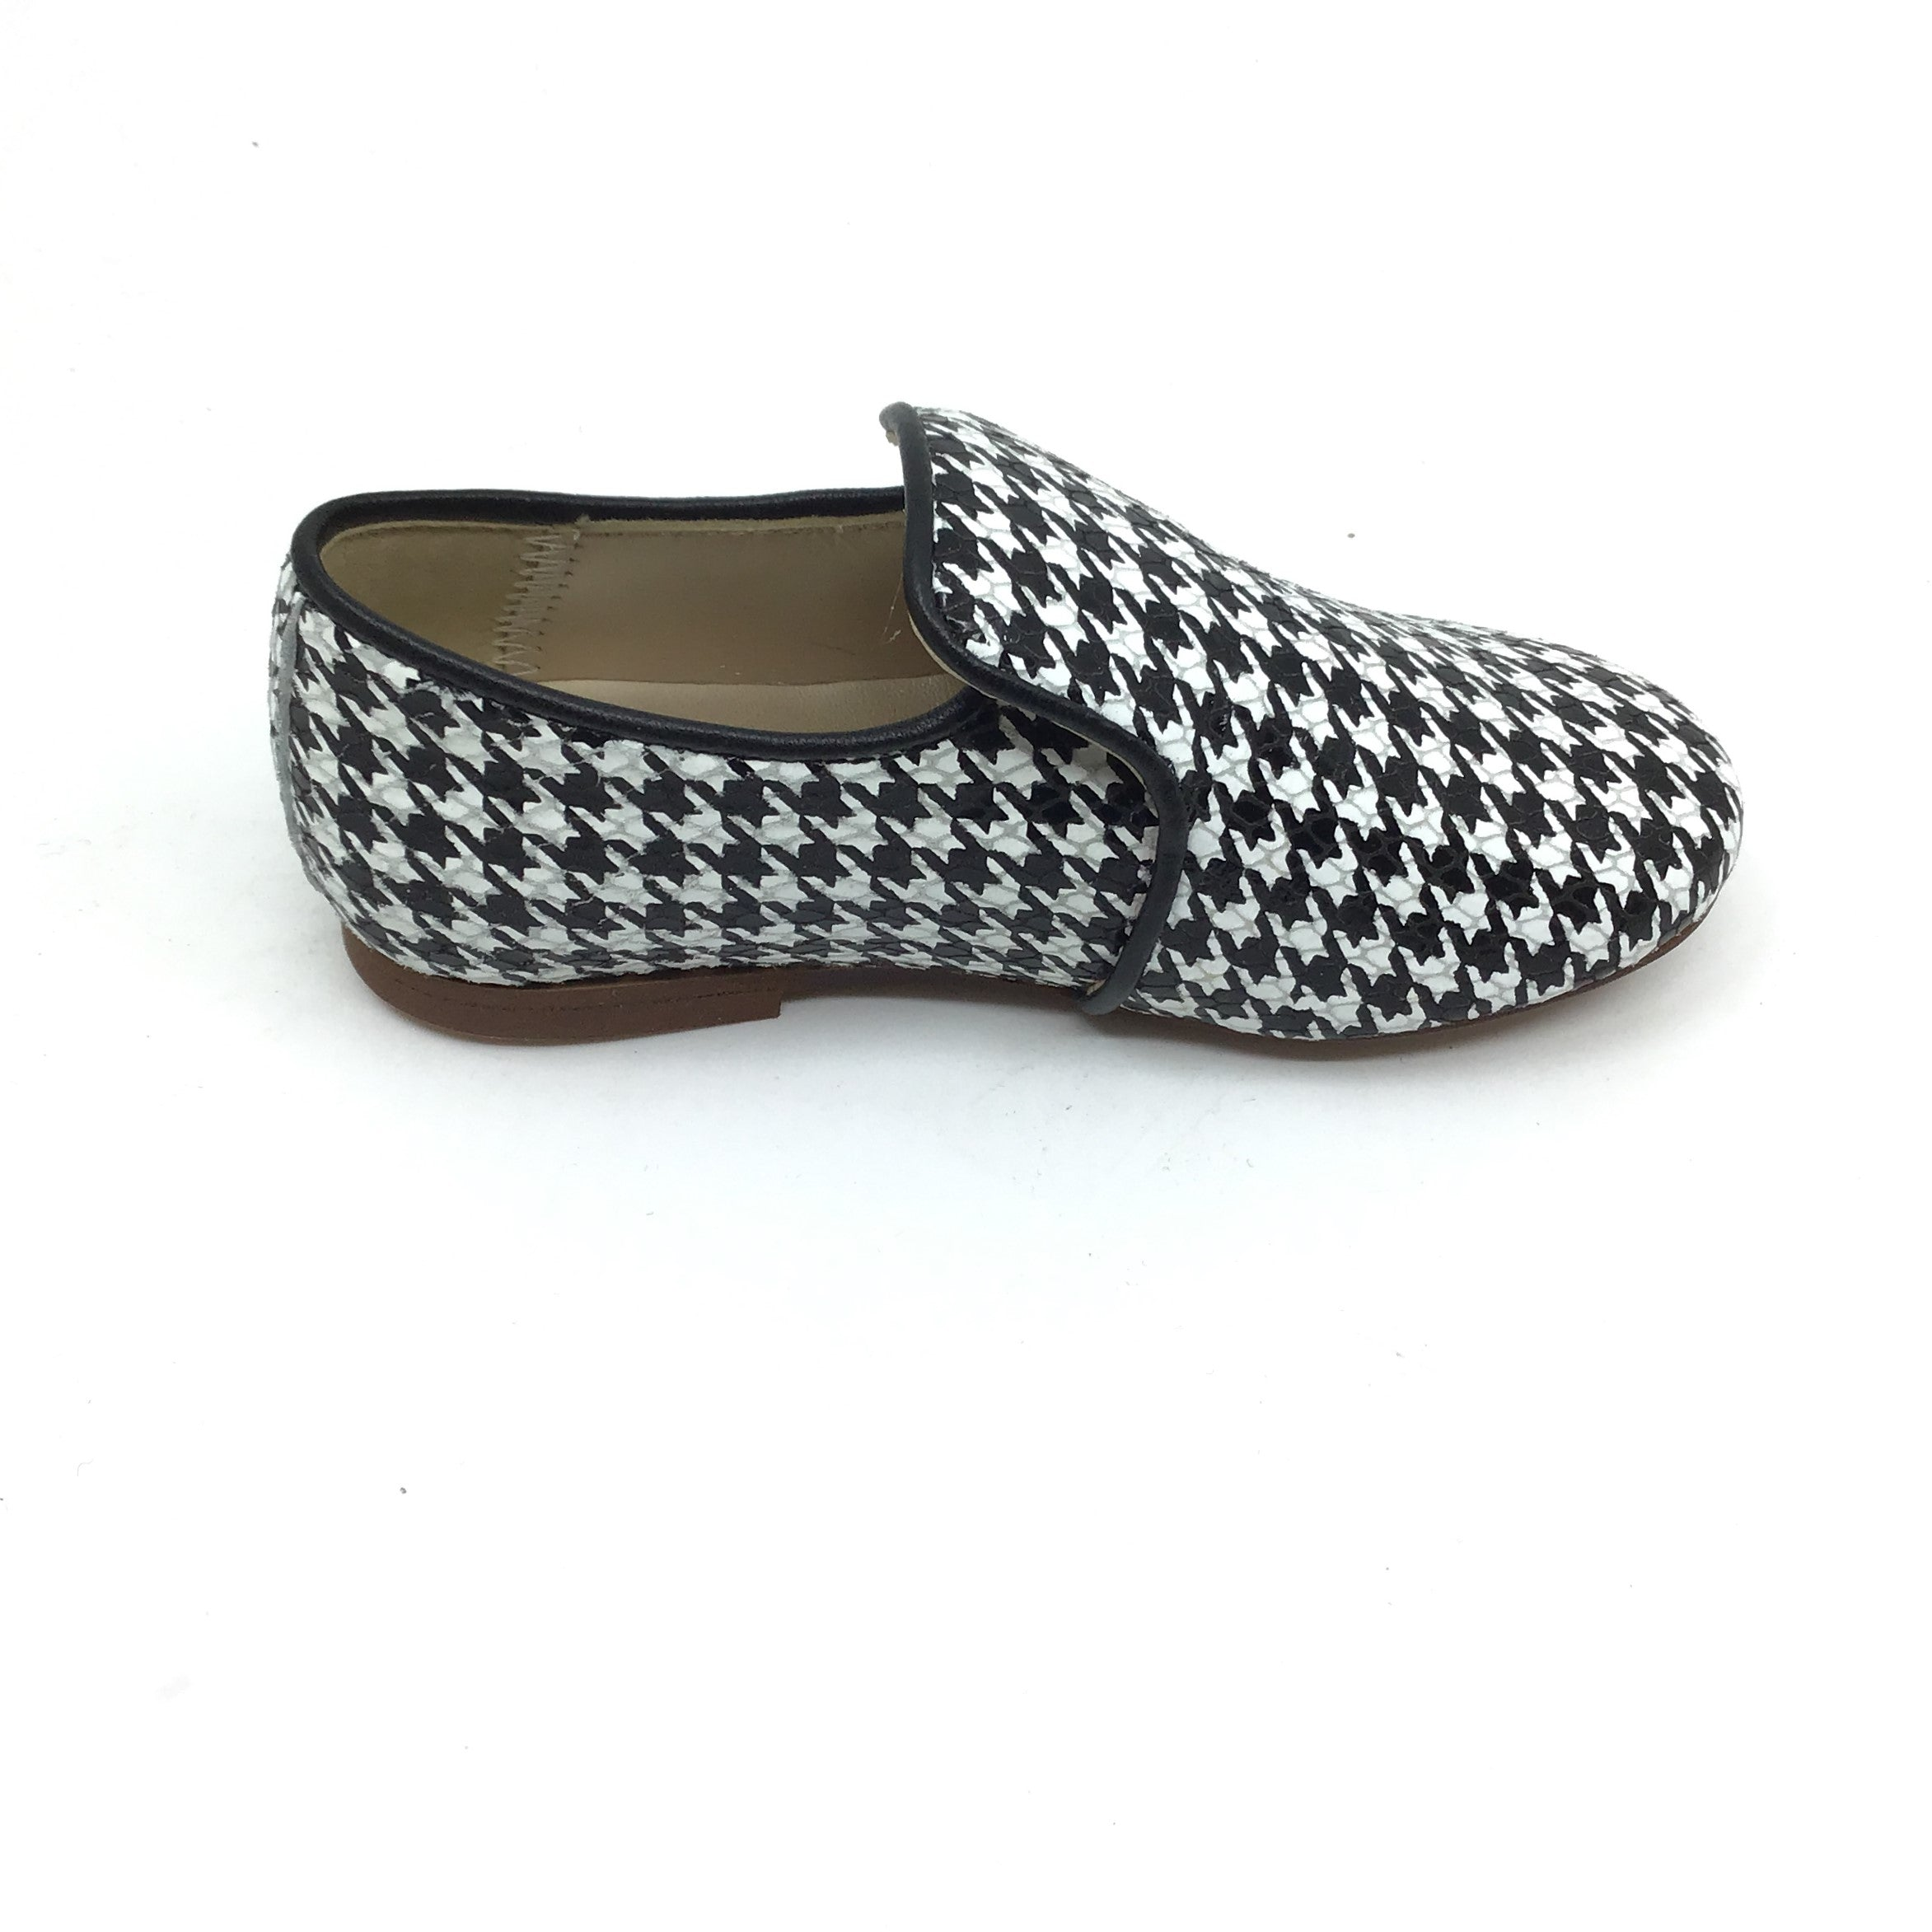 Papanatas Houndstooth Loafer